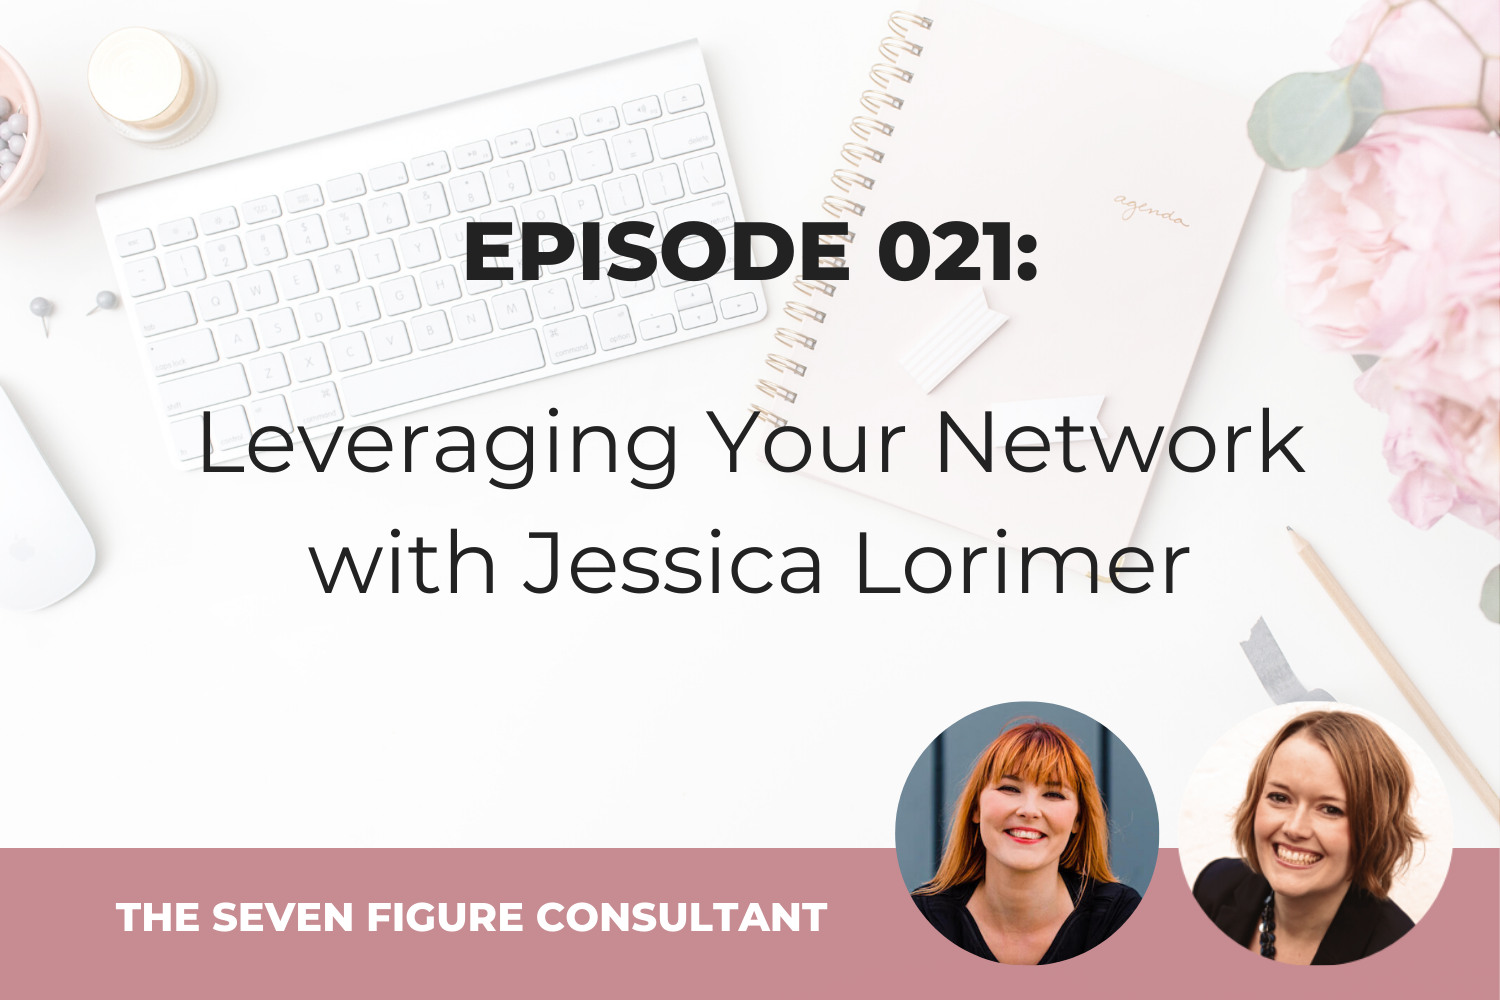 Episode 021: Leveraging Your Network with Jessica Lorimer